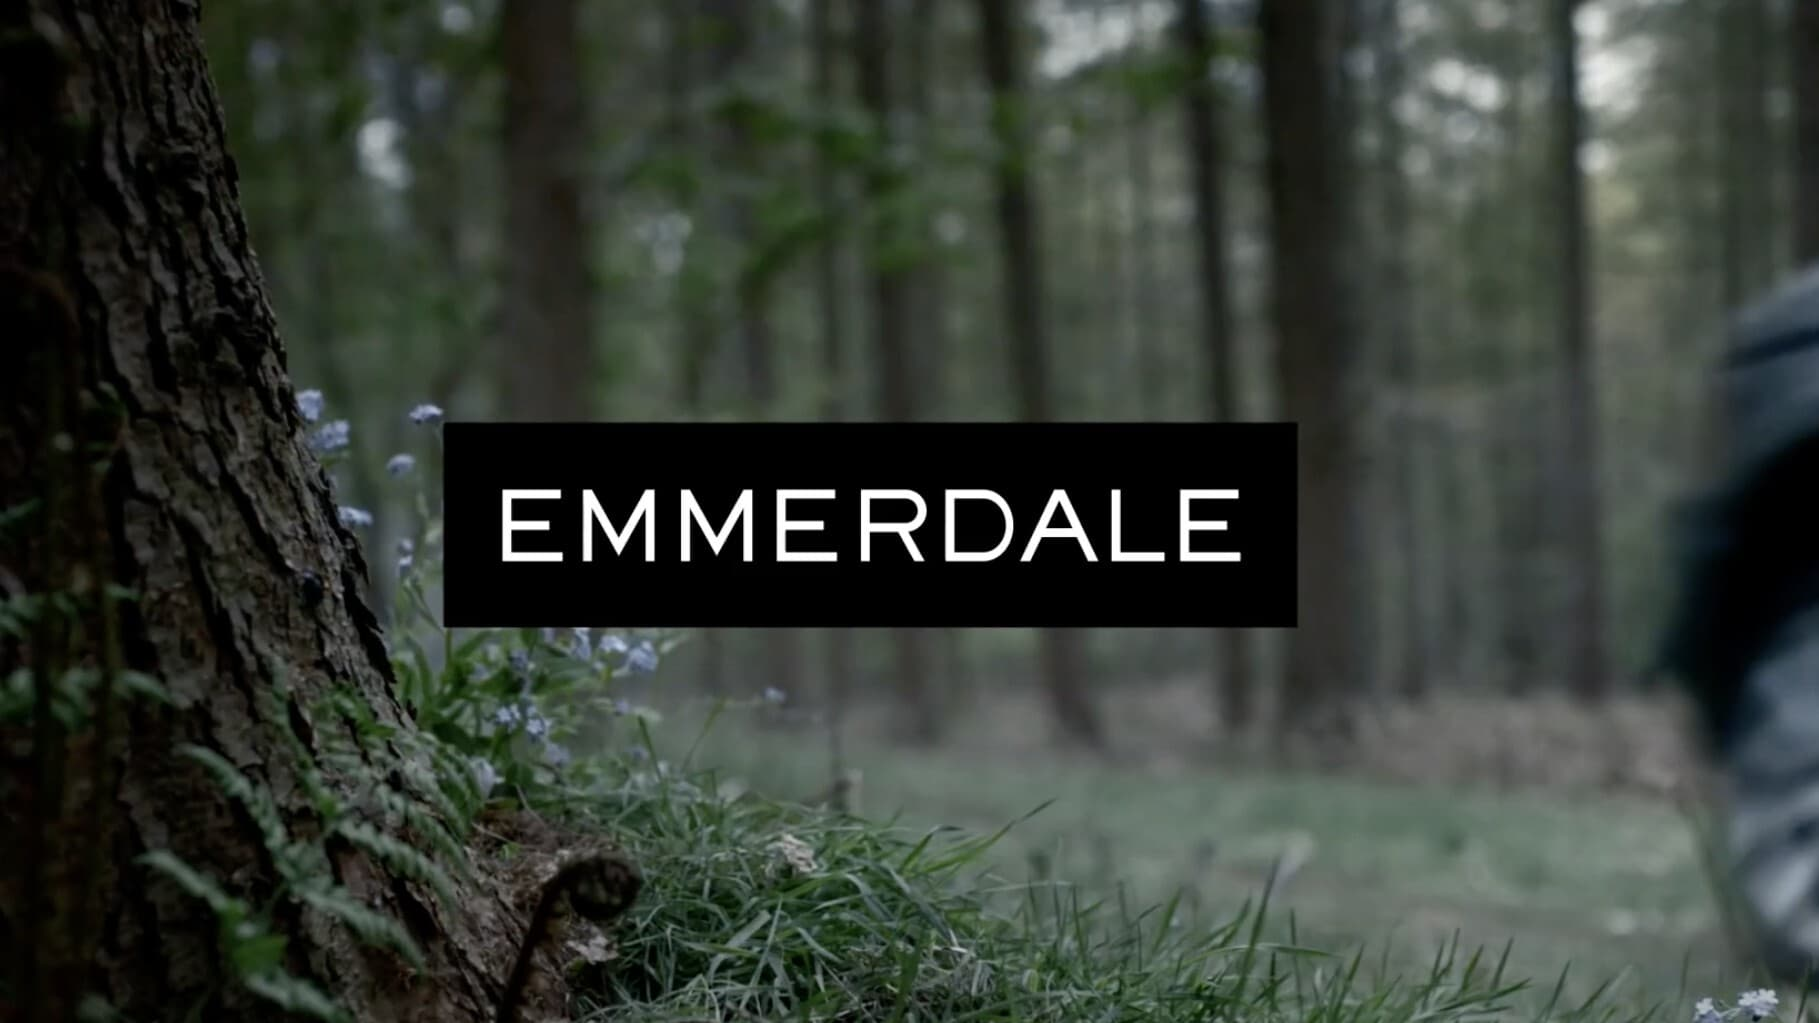 Emmerdale - Season 46 Episode 250 : Wednesday 2nd October 2019